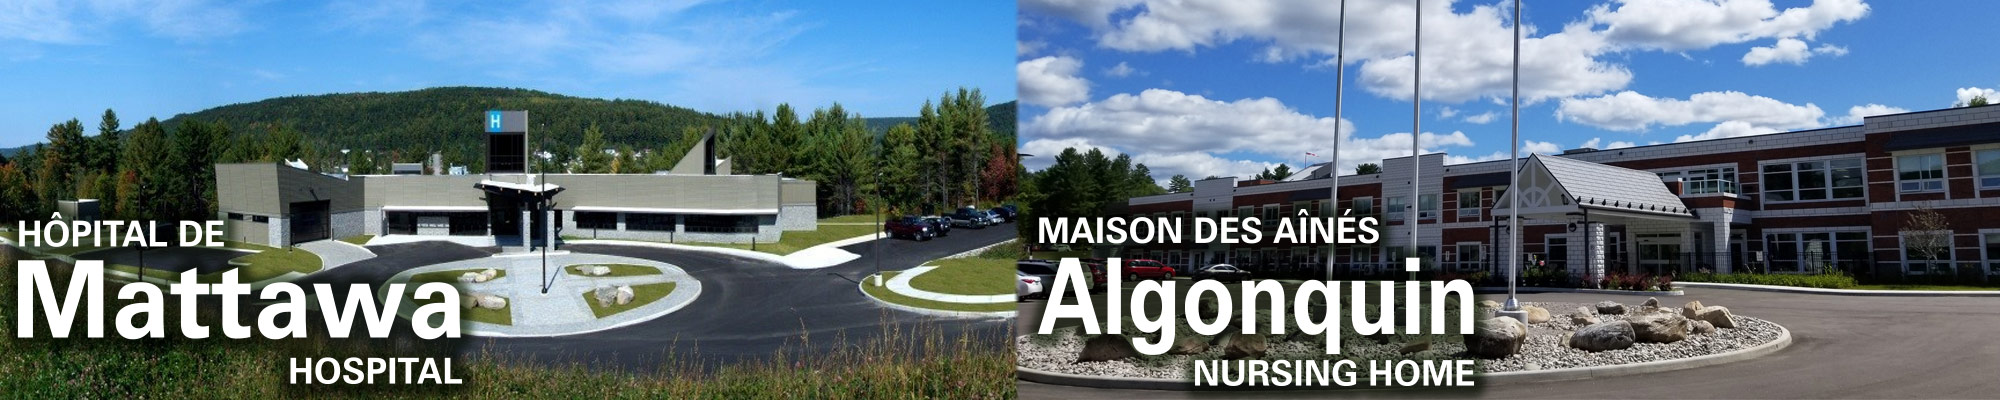 Masthead for Mattawa Hospital and Algonquin Nursing Home